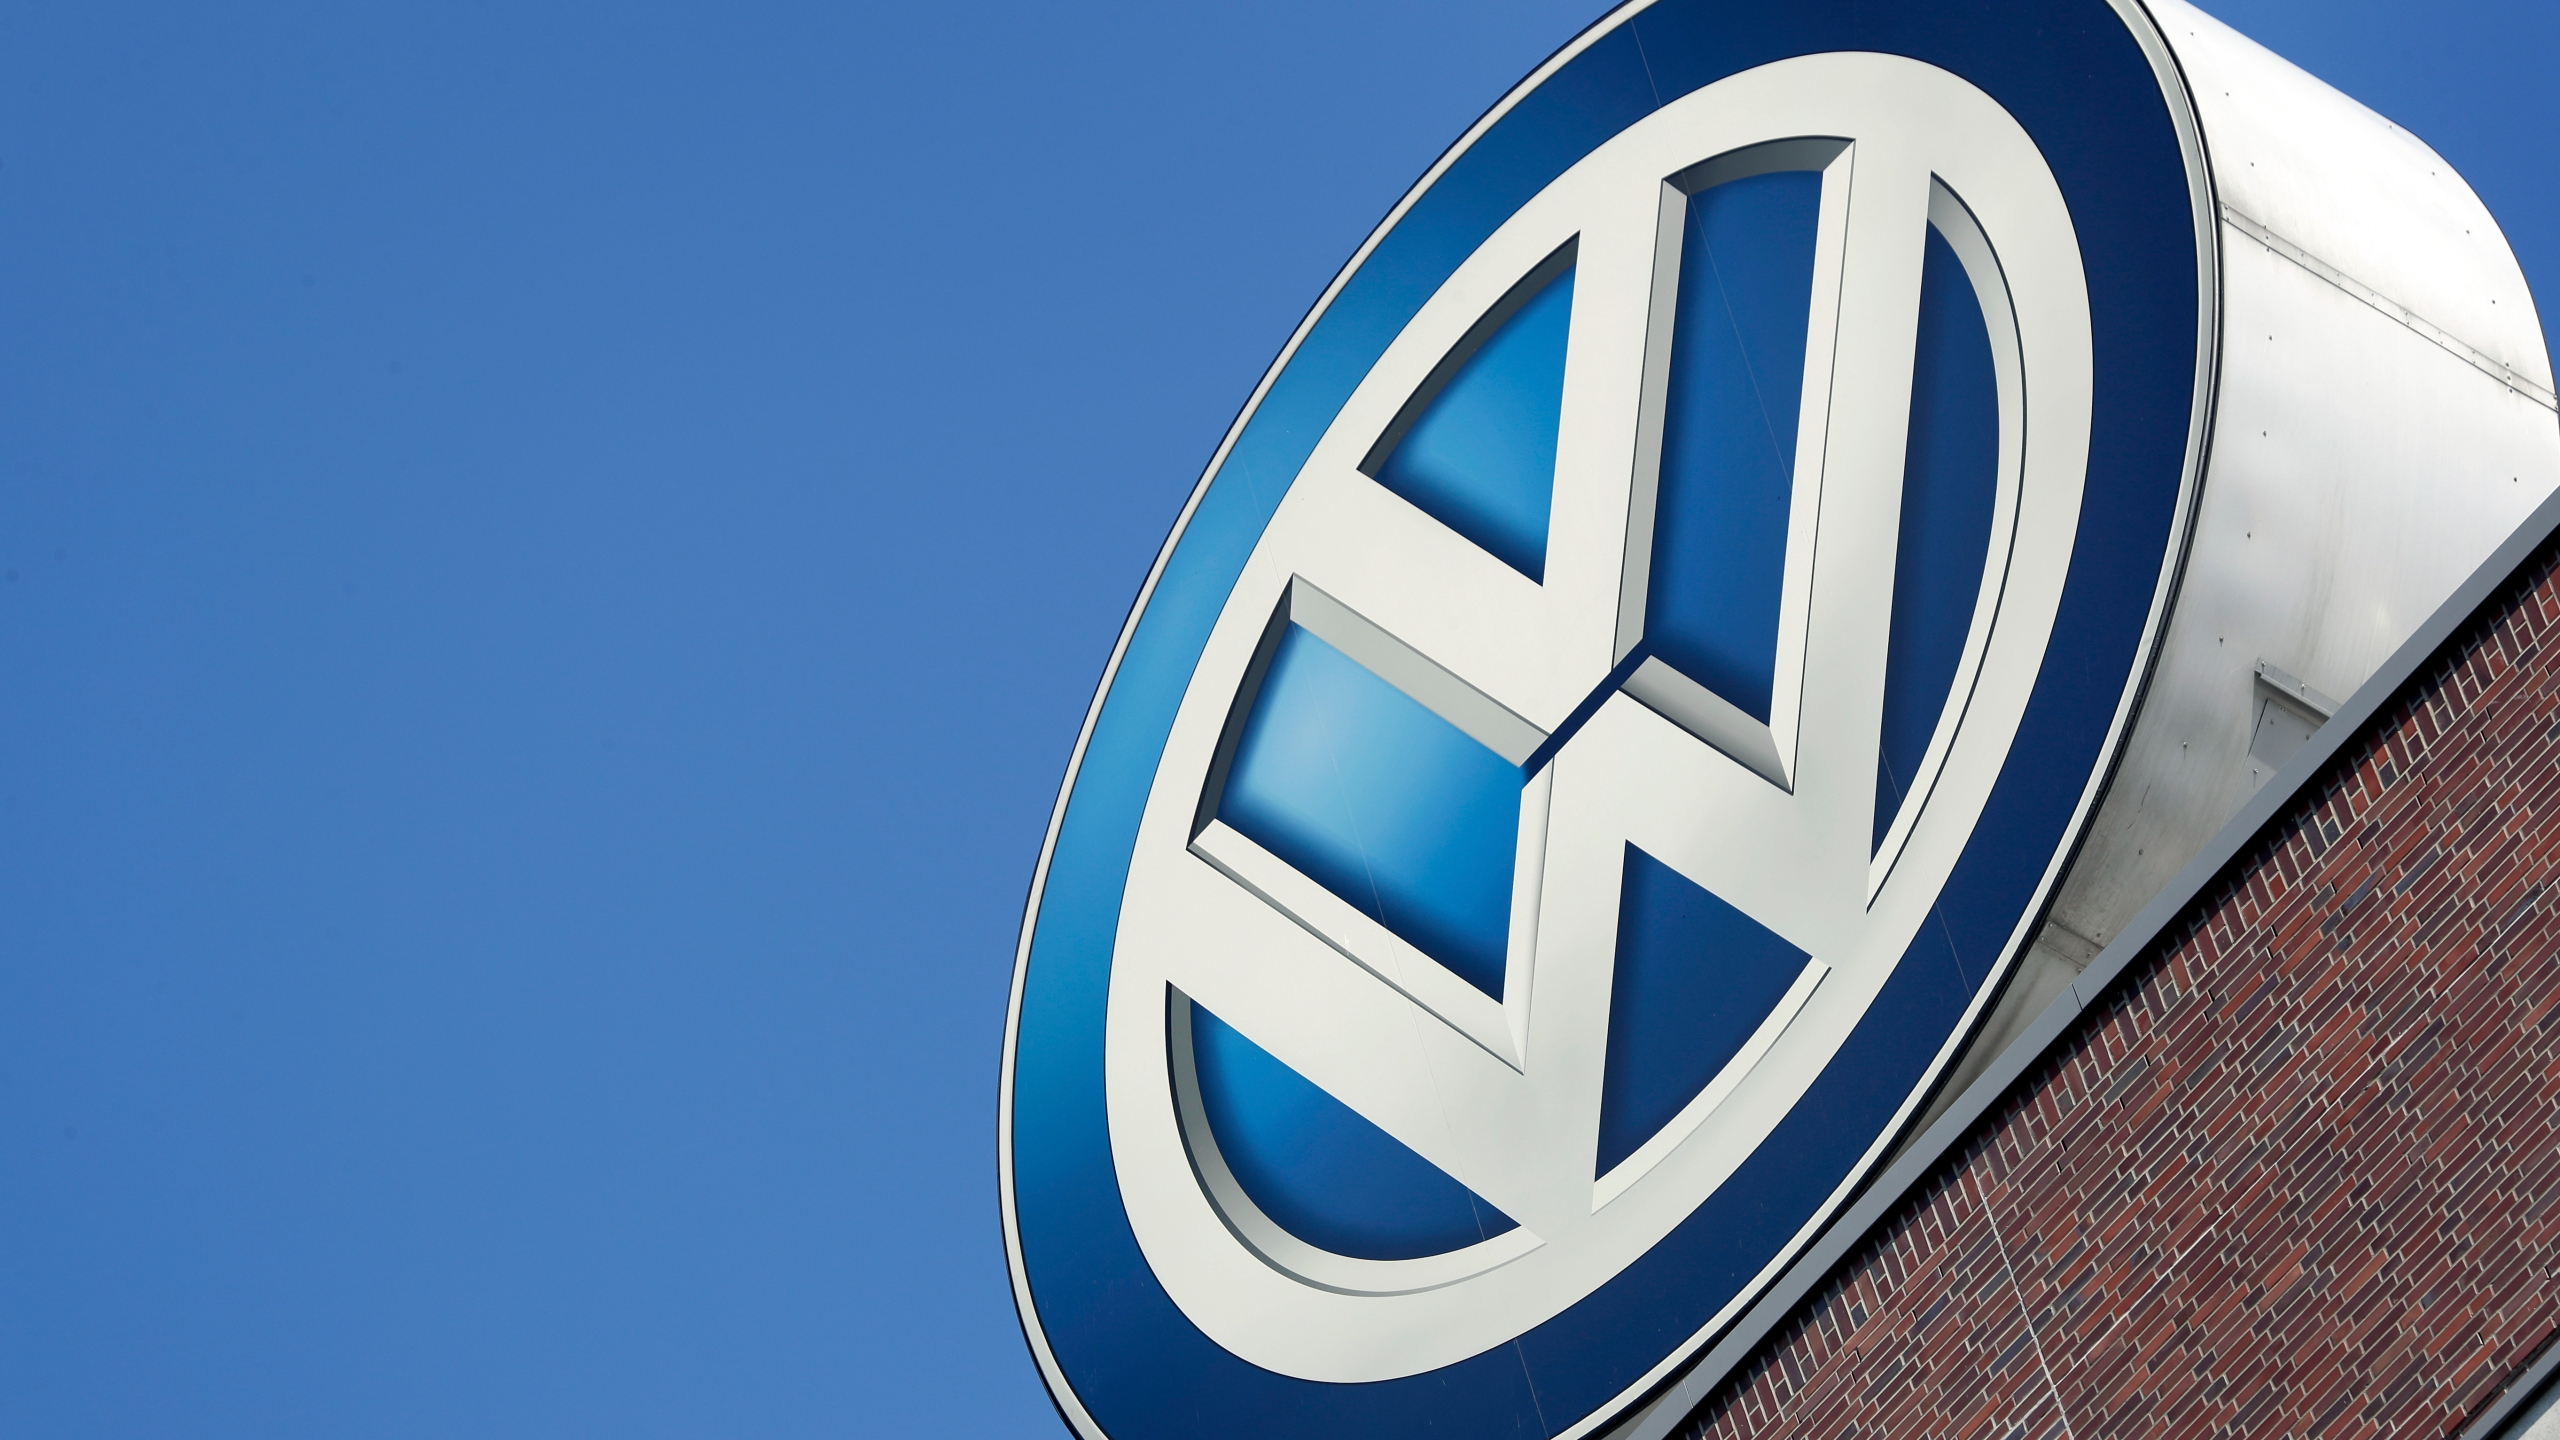 Germany_Earns_Volkswagen_75308-159532.jpg77371788